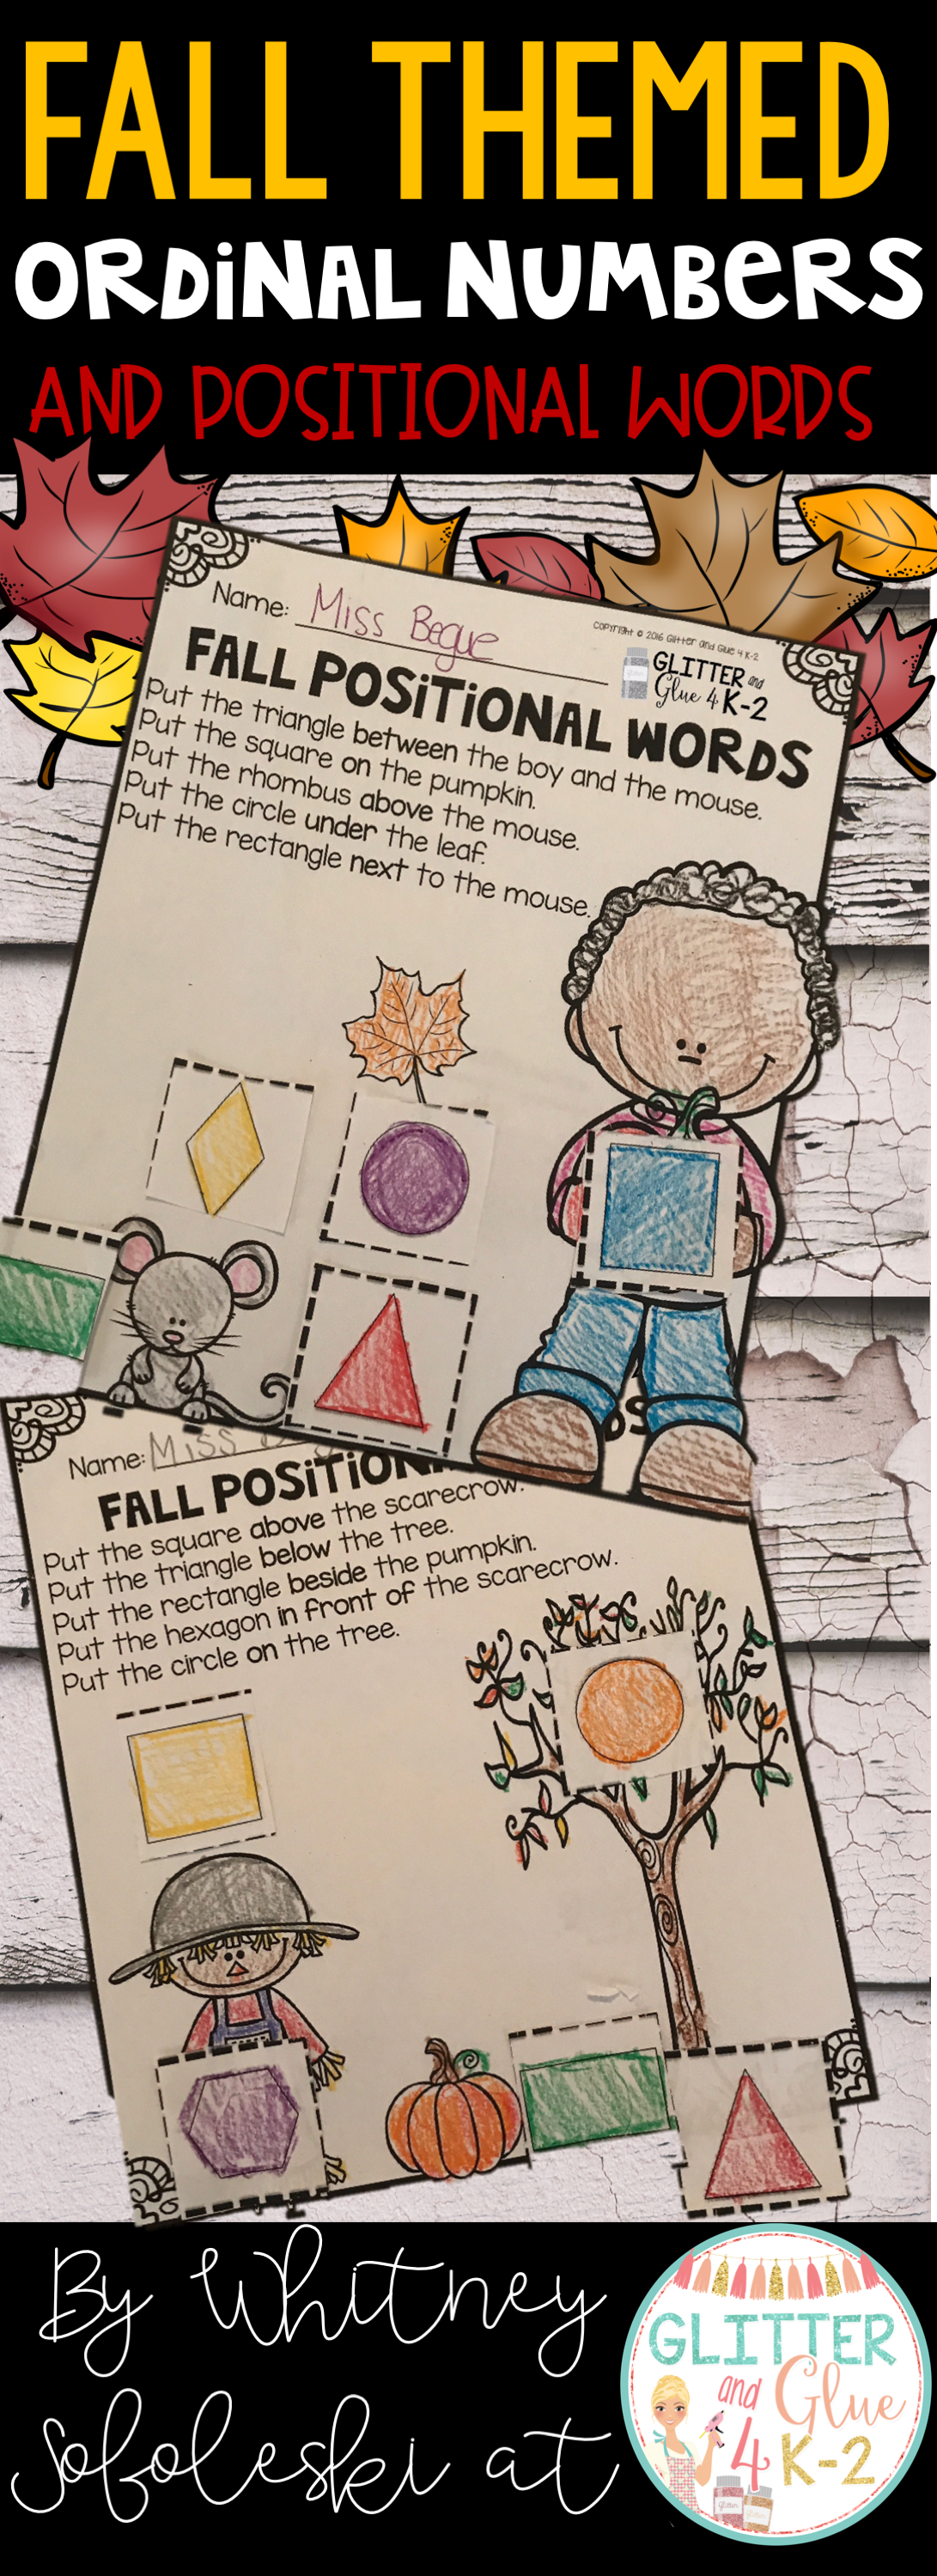 Ordinal Numbers And Positional Words Fall Themed